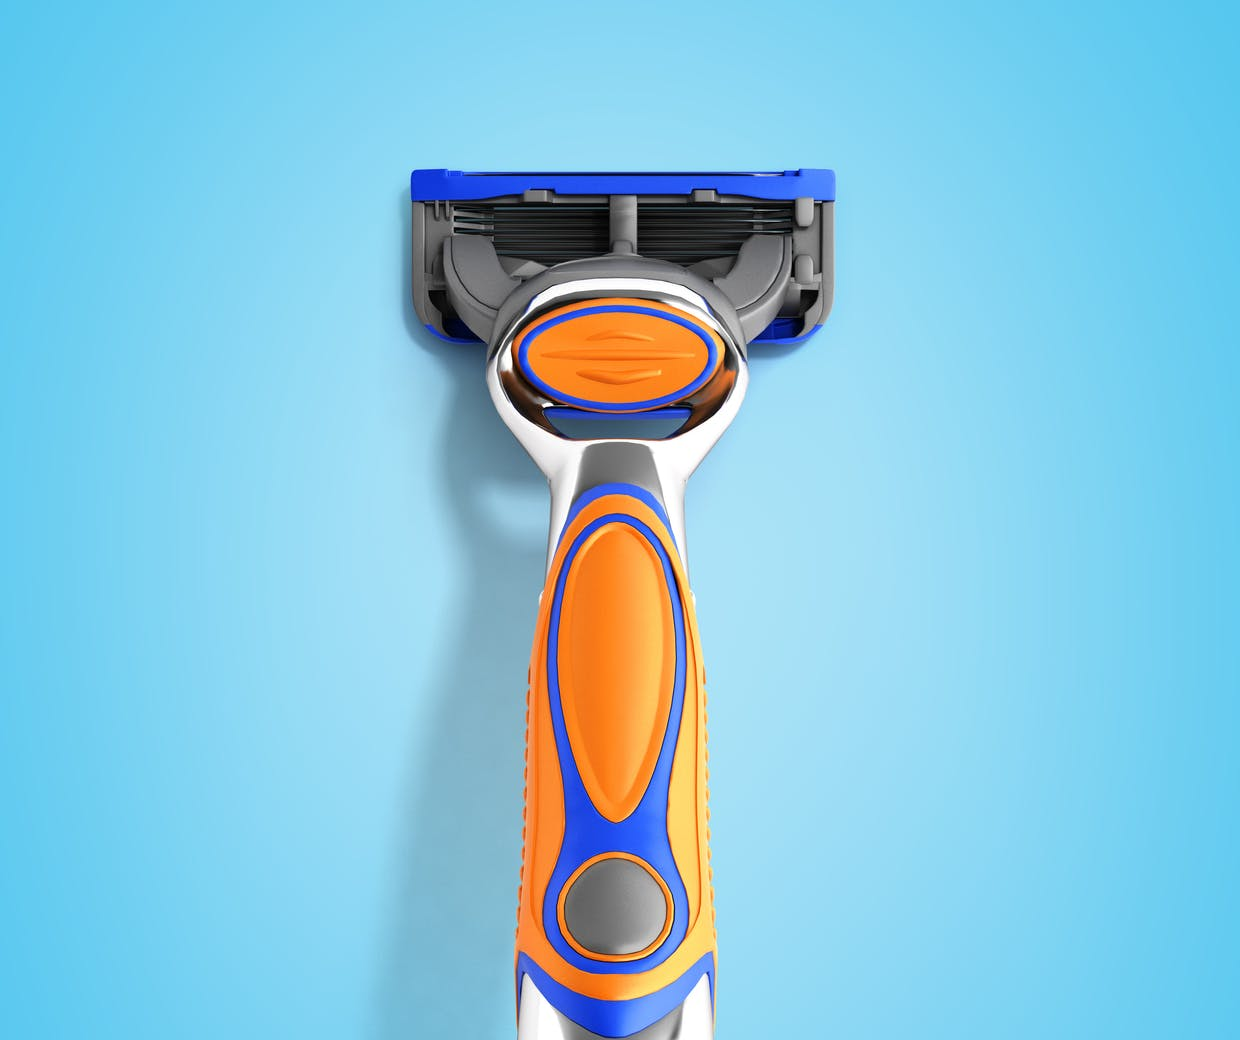 Ritson on how Gillette convinced consumers to switch to a more expensive product